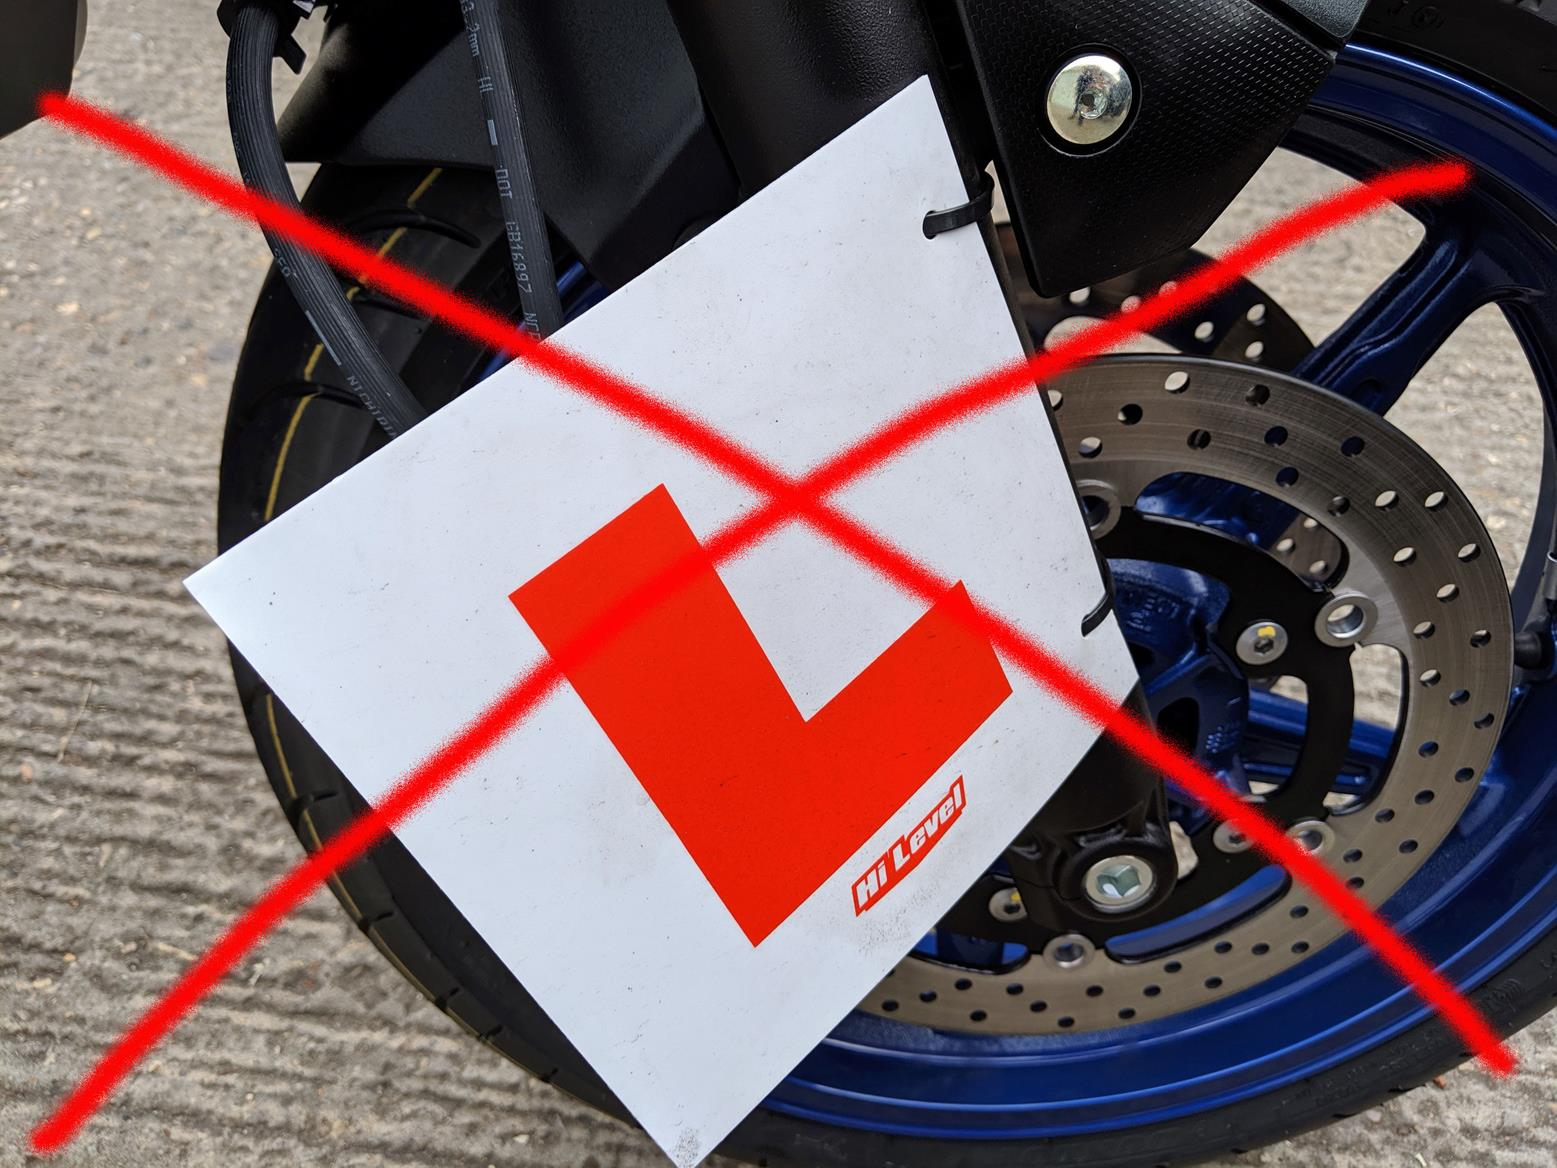 I can FINALLY get rid of the L-plates